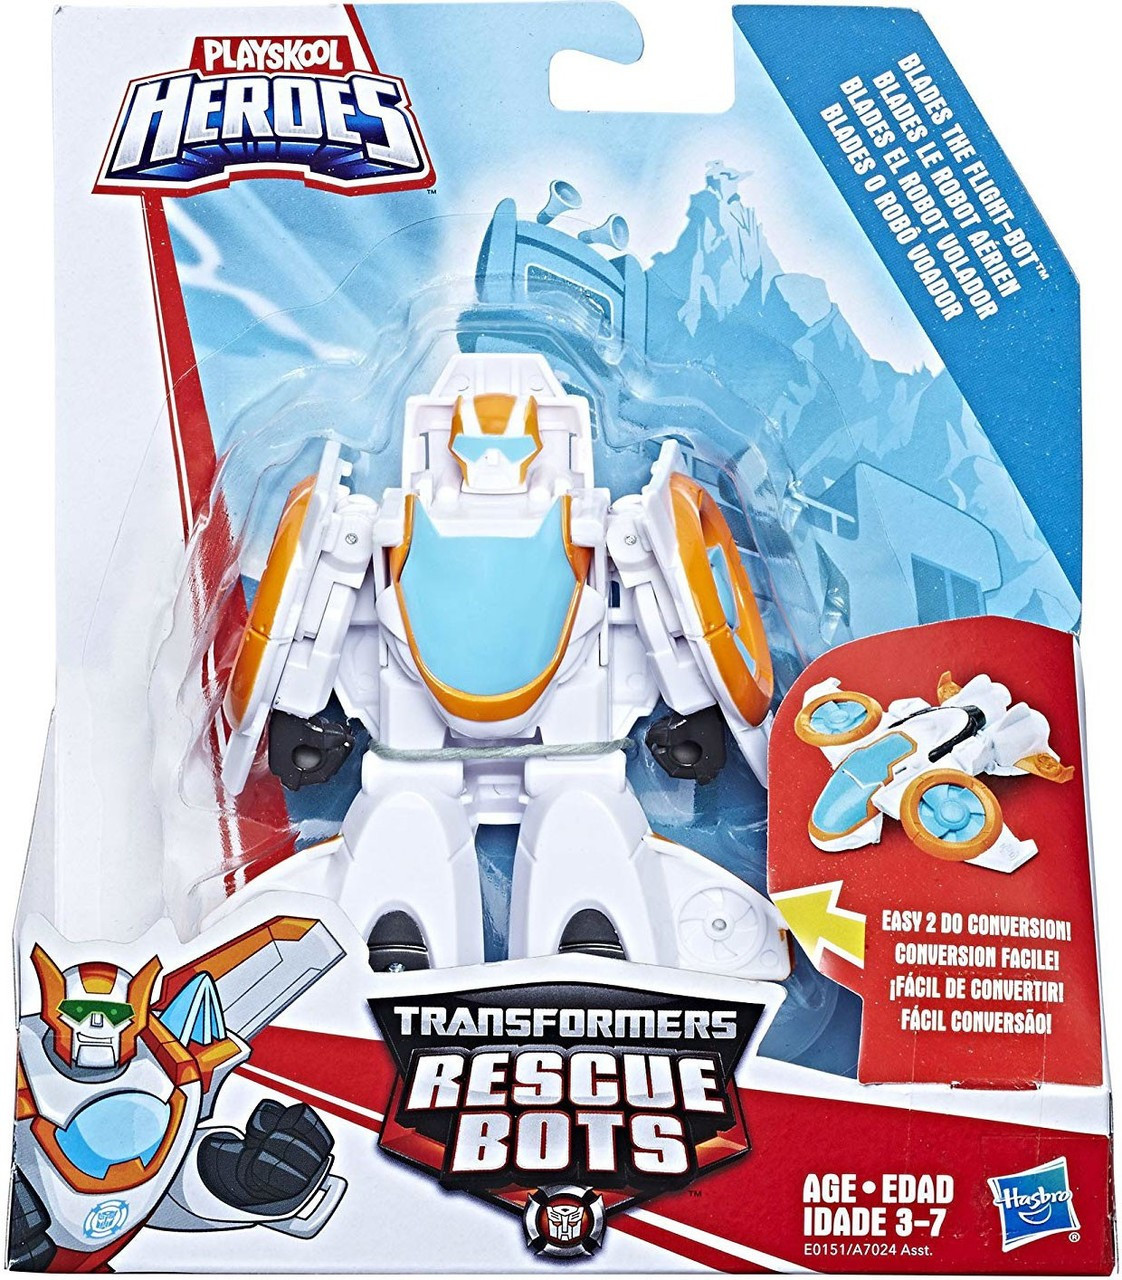 Playskool Heroes Transformers Rescue Bots Rescan Blades The Flight Bot Action Fi